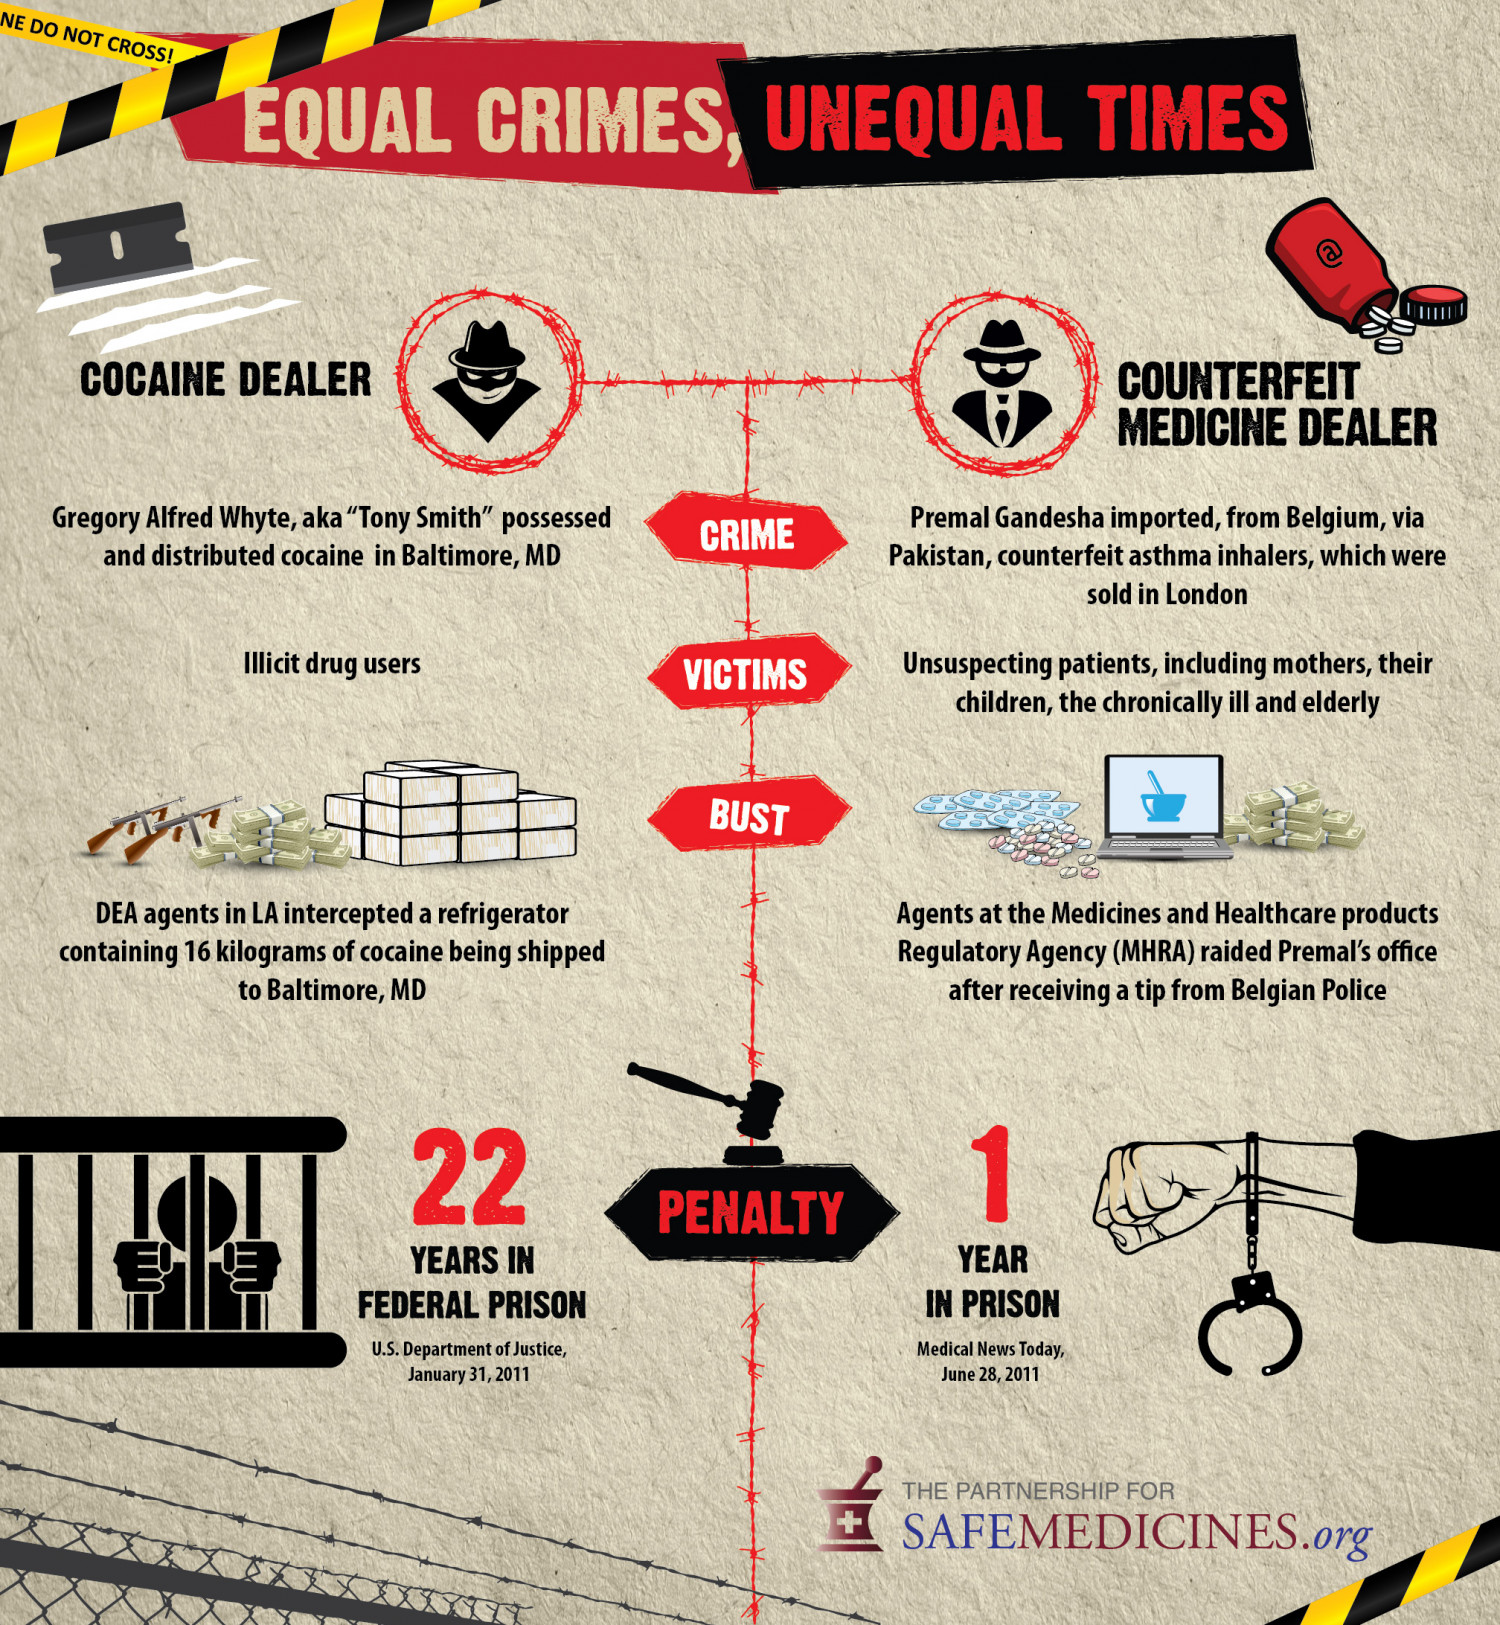 Equal Crimes, Unequal Times Infographic